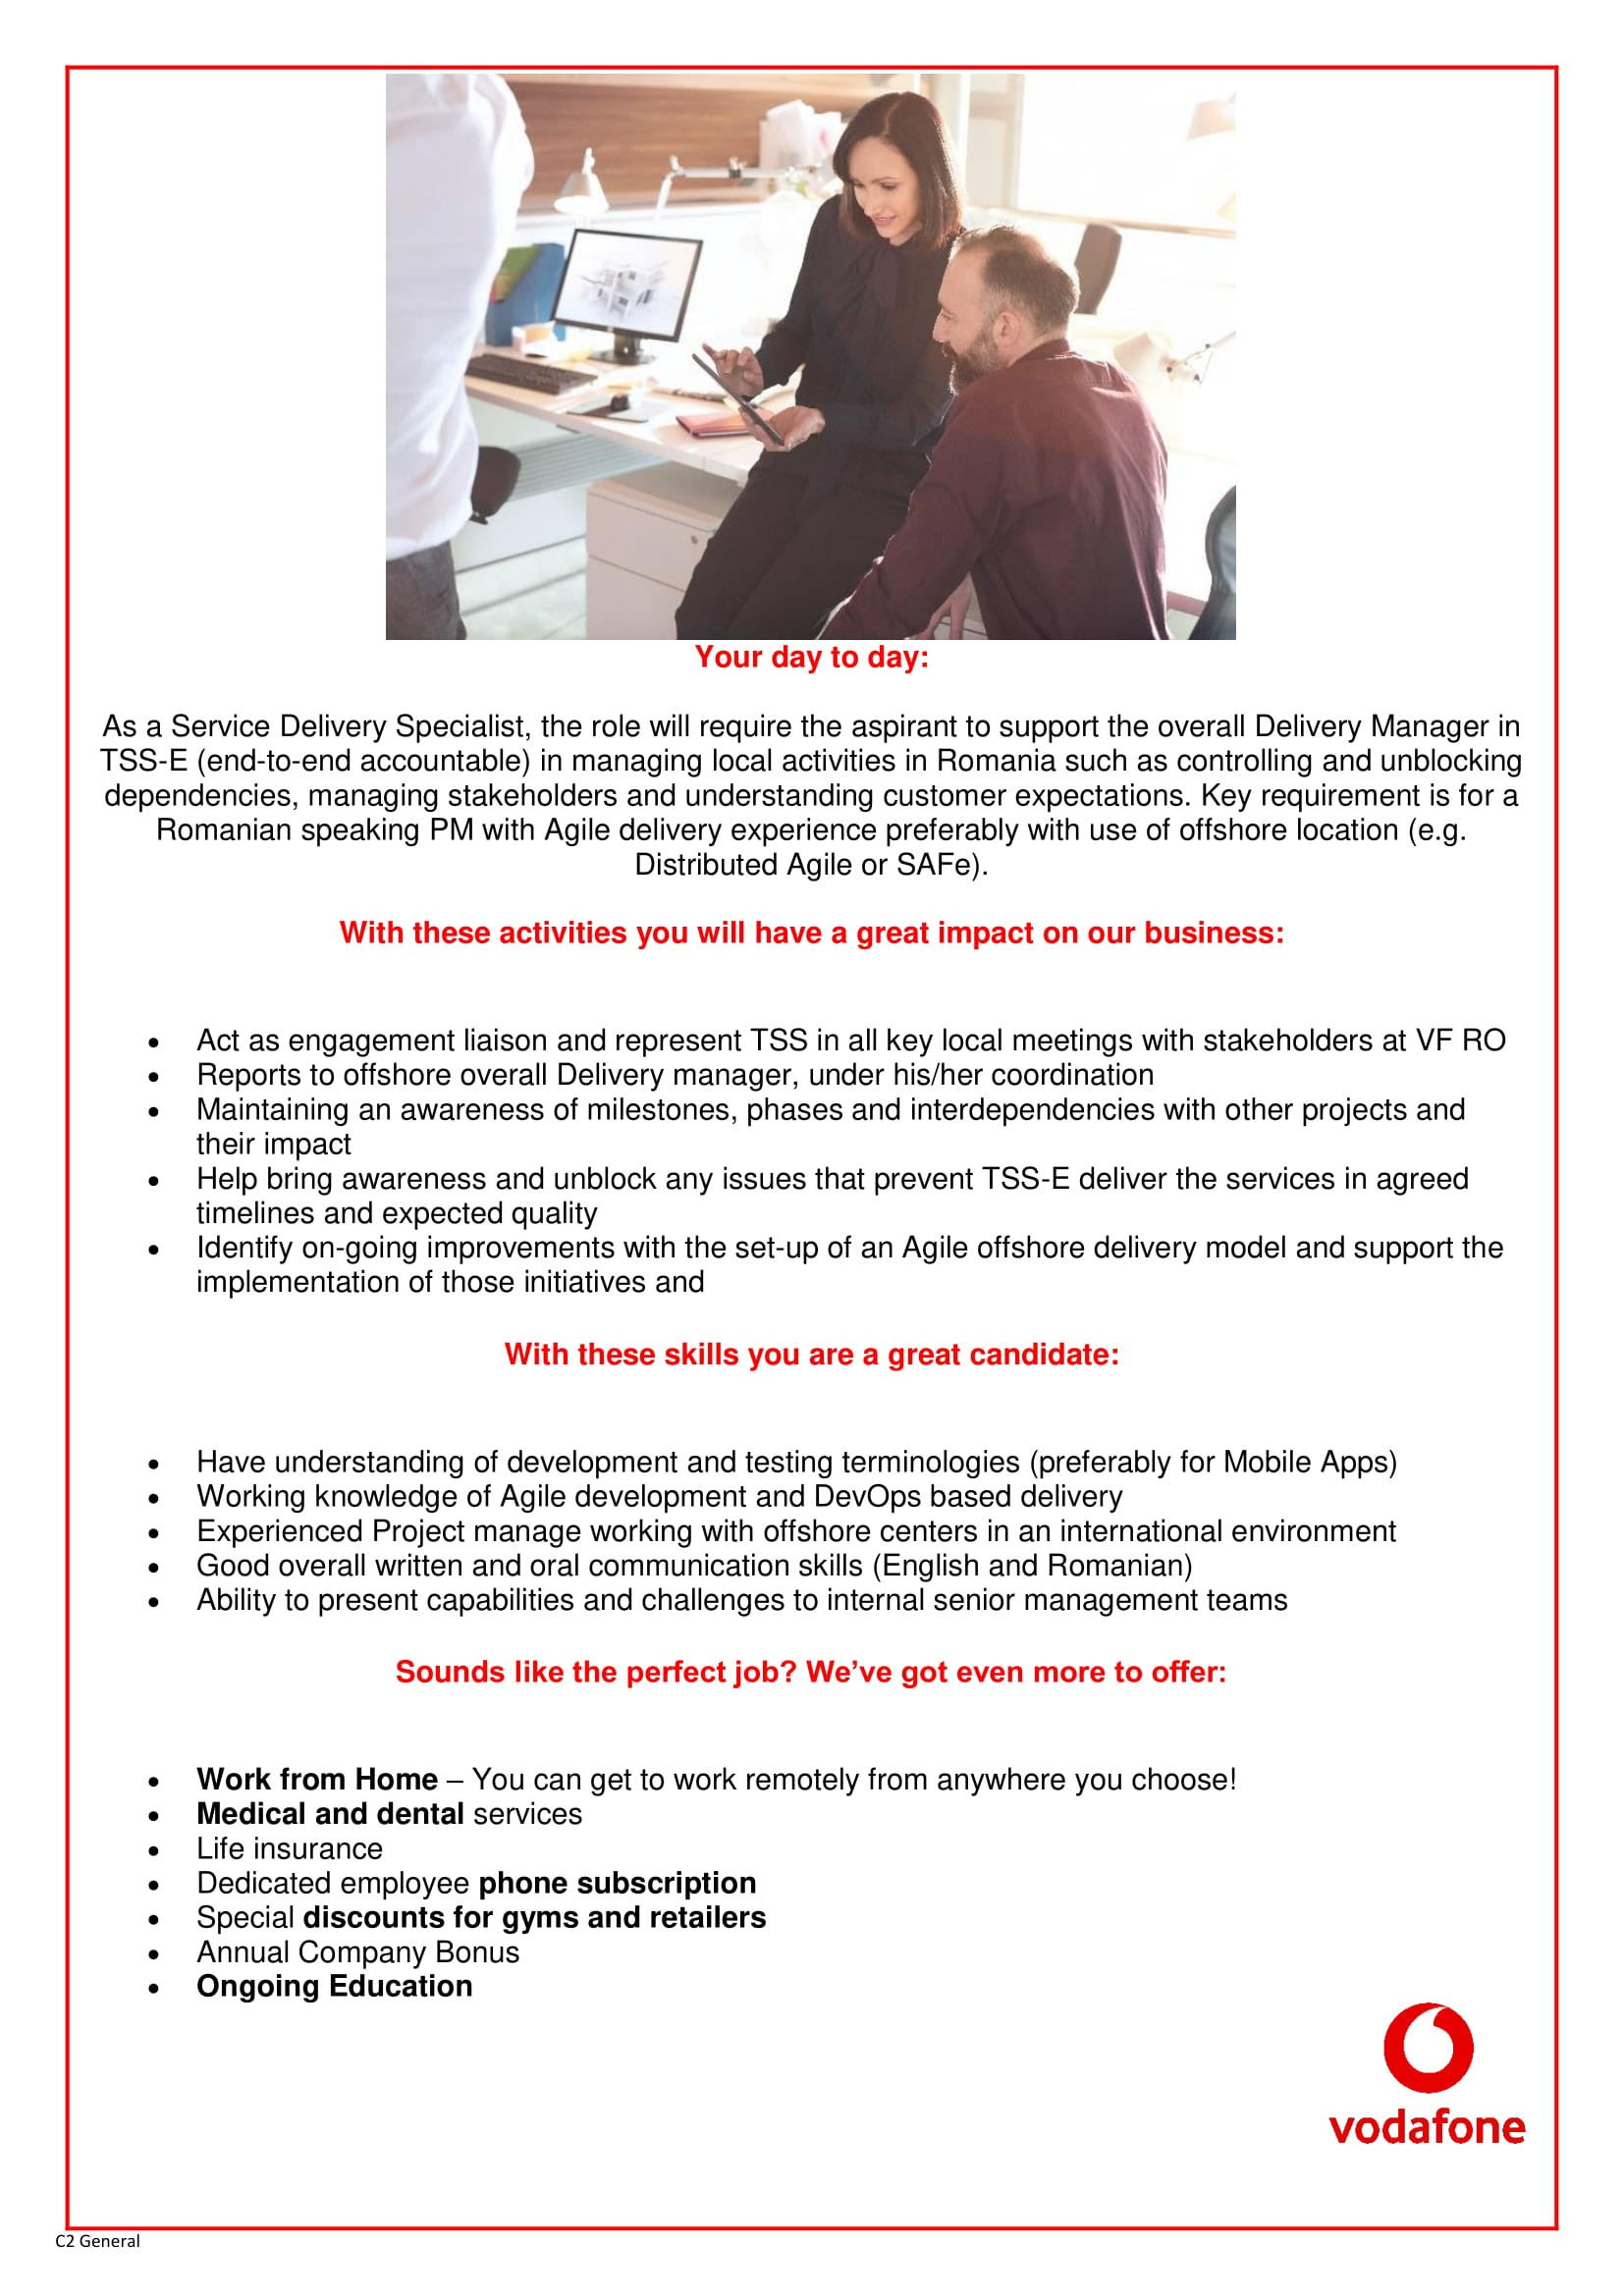 Service Delivery Specialist